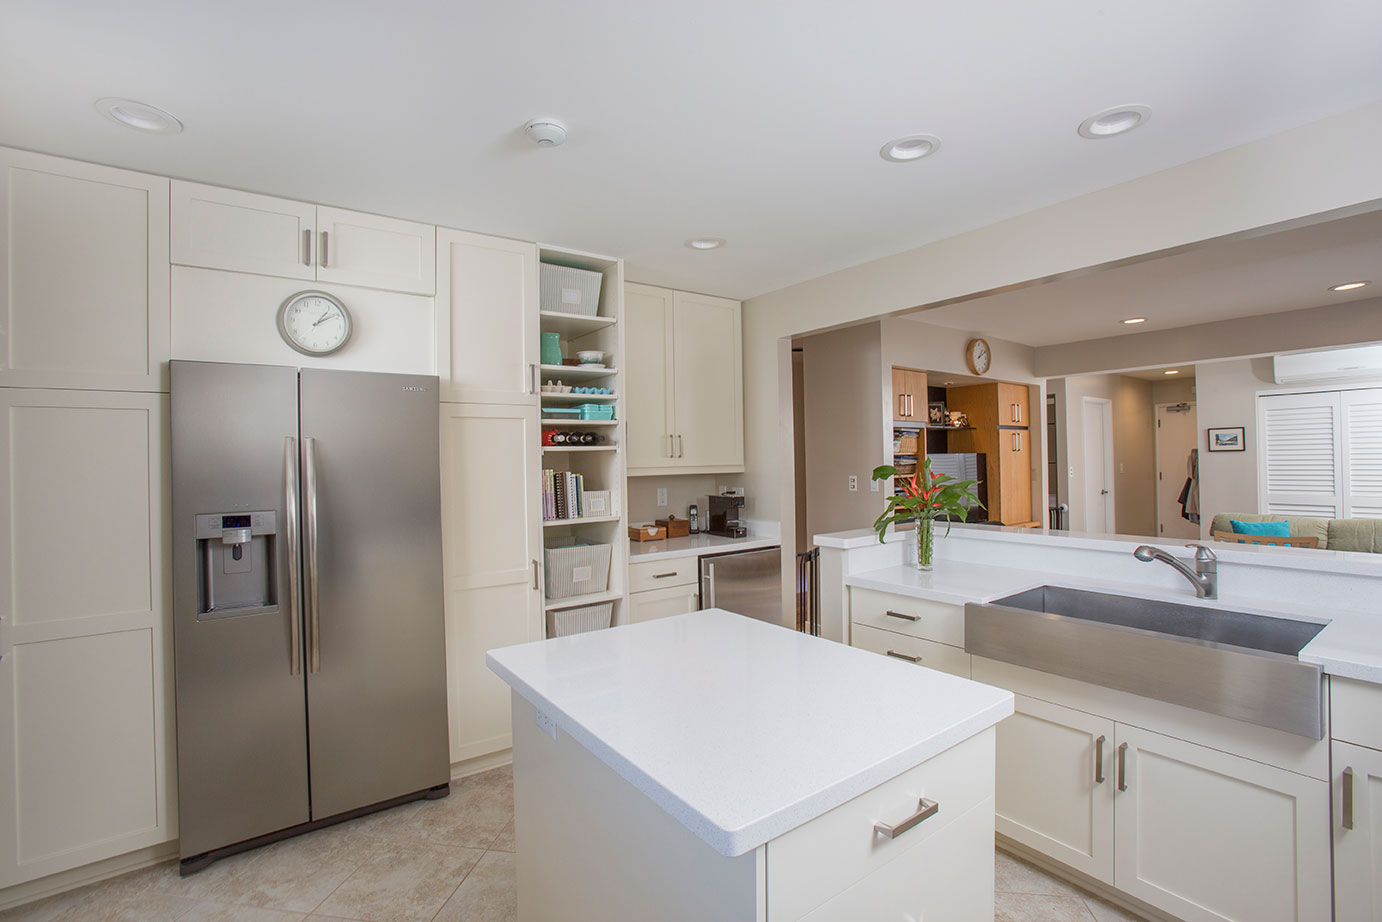 Hawaii Kitchen Remodeler   A Clean, Mean Kitchen Makeover By Homeowners  Design Center